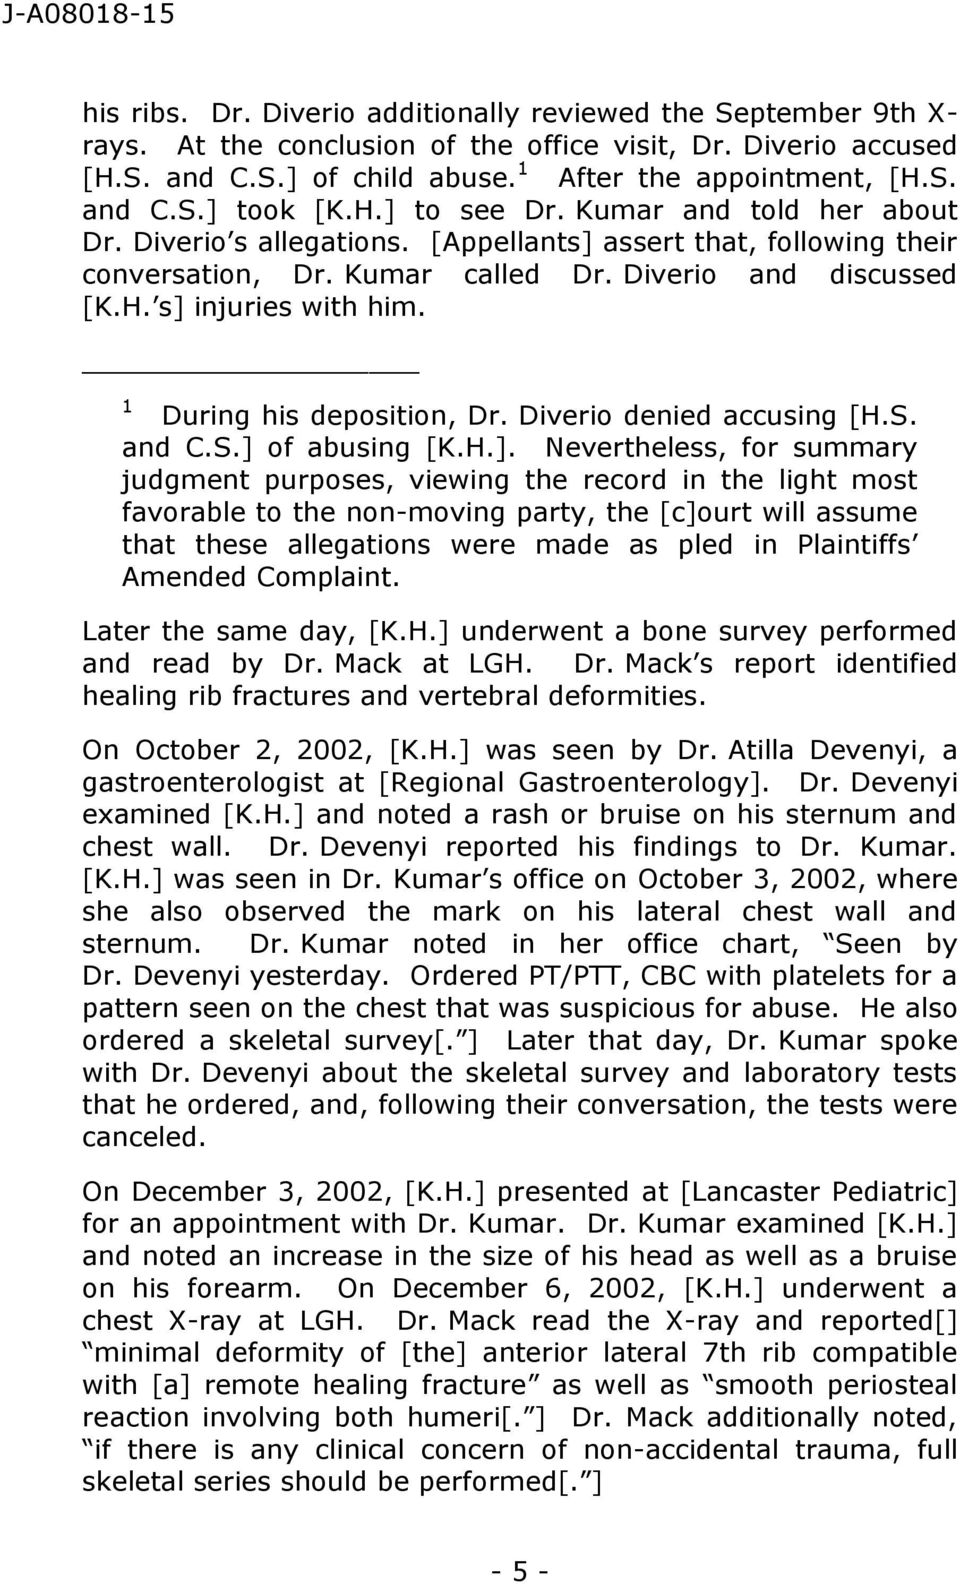 1 During his deposition, Dr. Diverio denied accusing [H.S. and C.S.]